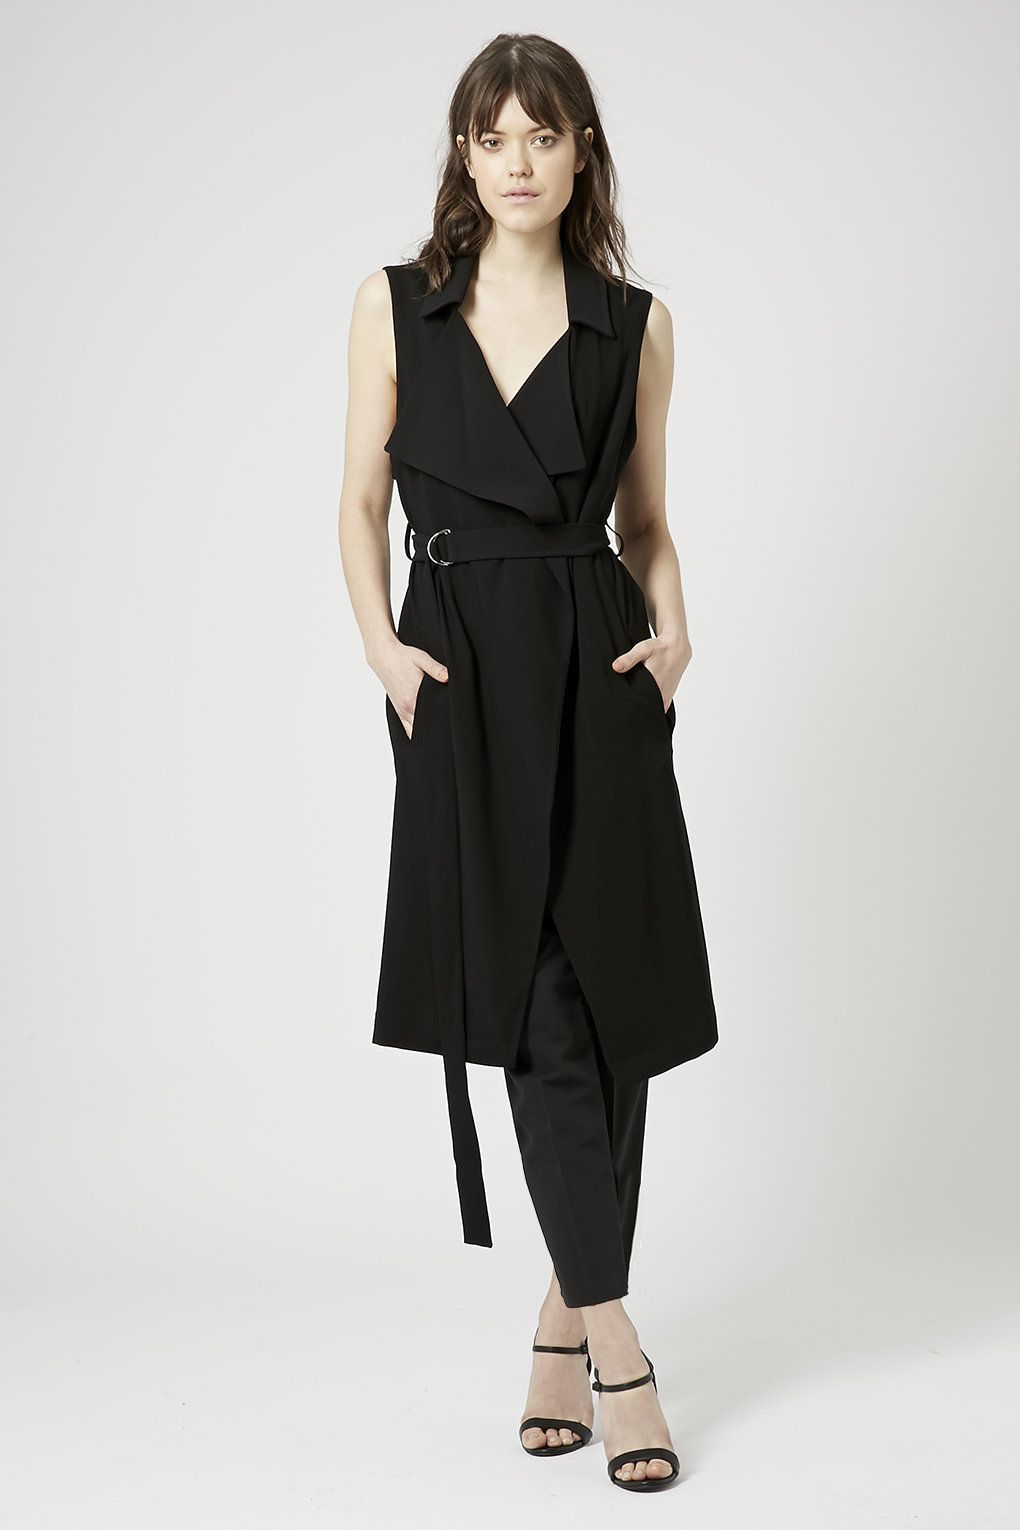 db15e4dc7c8c Sleeveless Belted Duster - Topshop | Workday Chic | Sleeveless ...